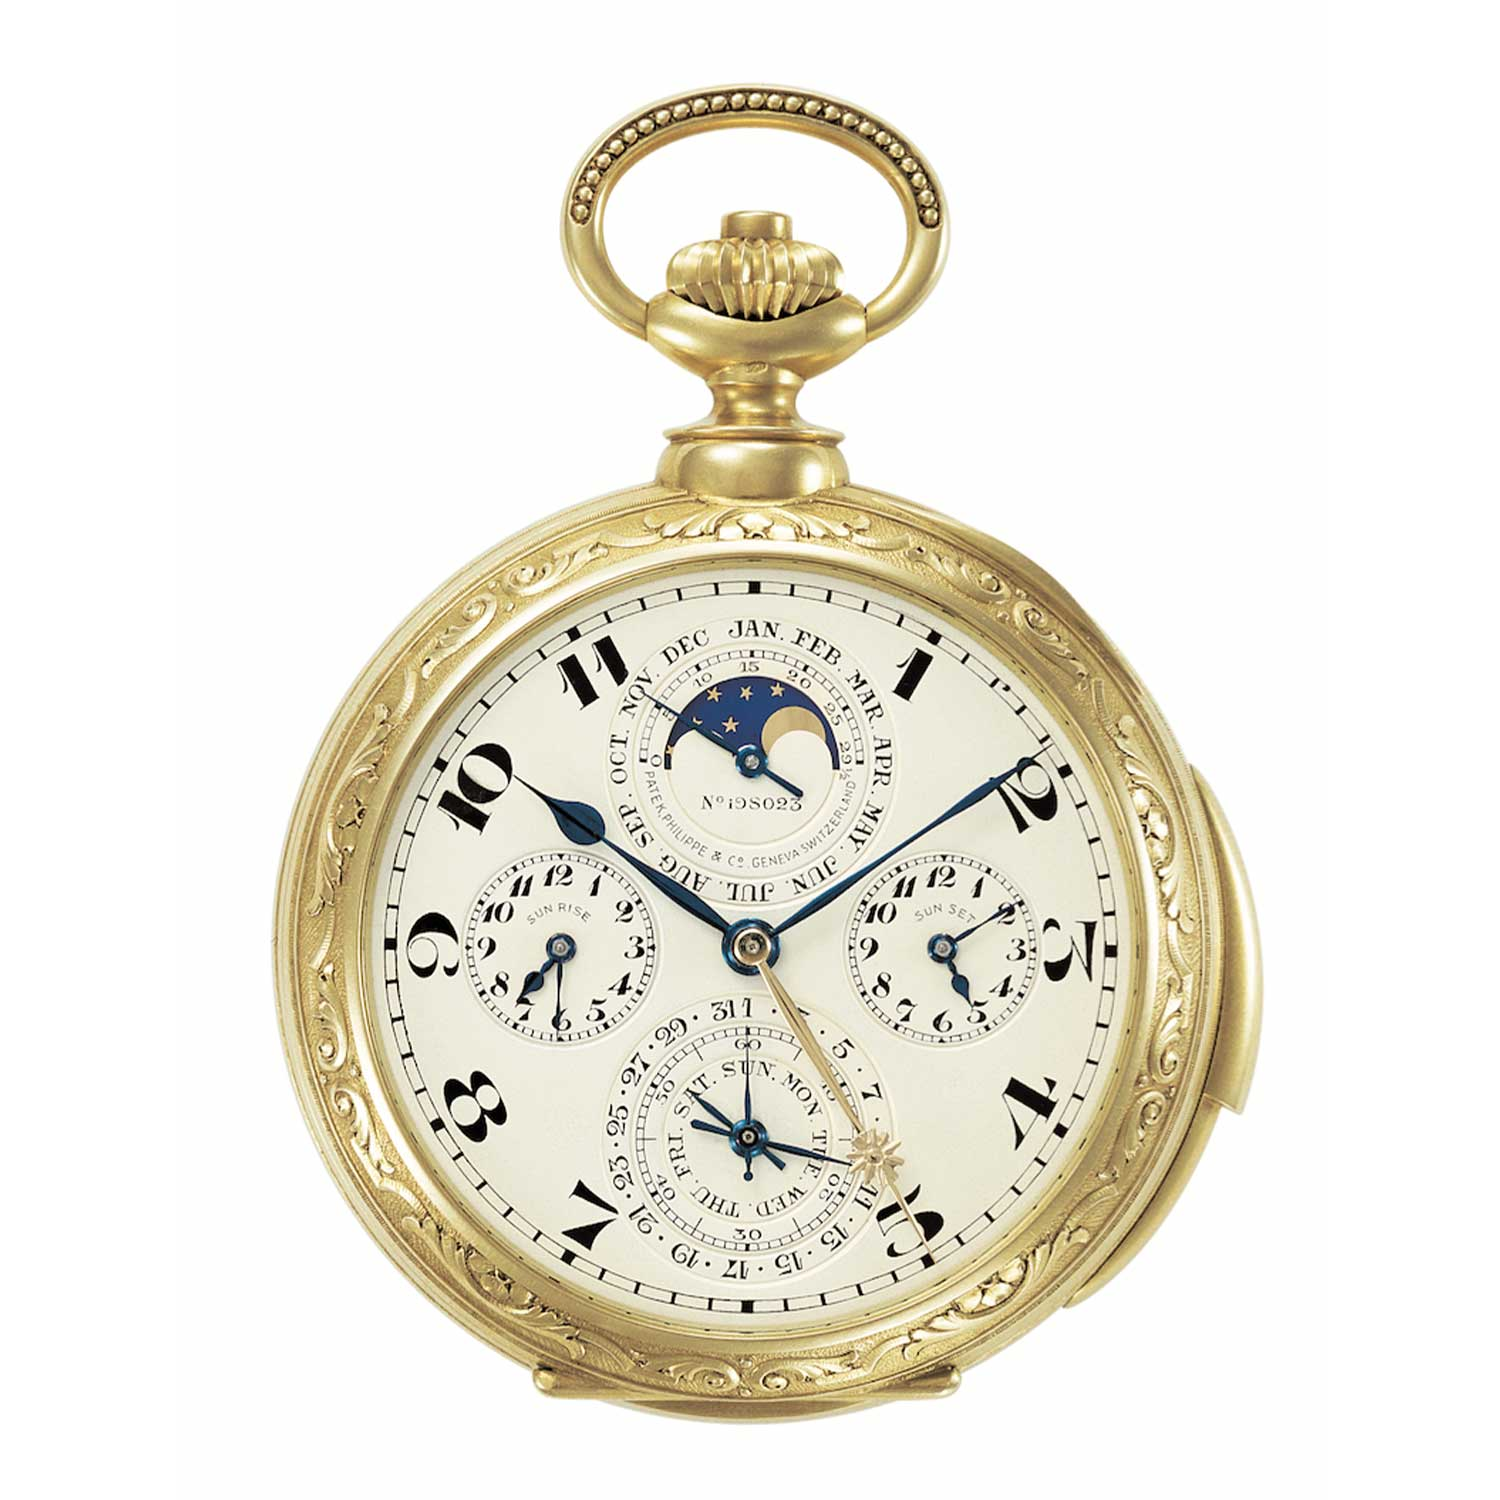 Note that this legendary Patek Philippe pocket watch made for James Ward does not feature a leap-year indicator on the dial side for its perpetual calendar. Watches like this were sent to watchmakers to remove the dial to set them.